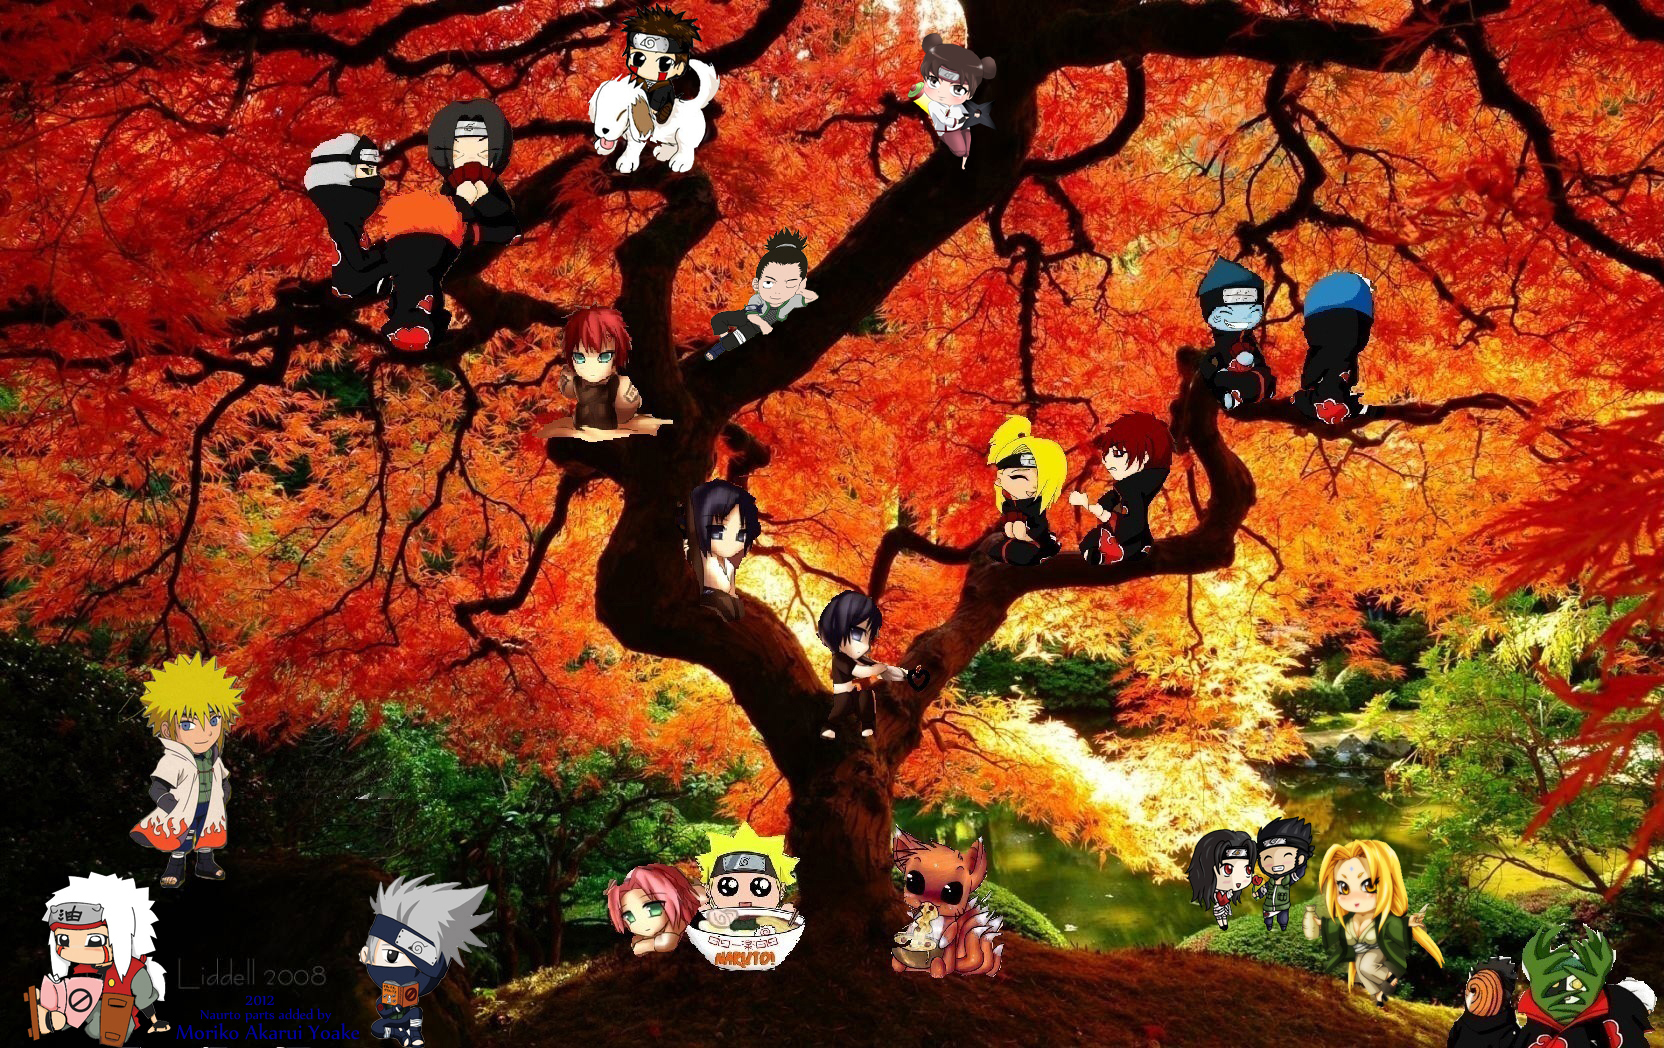 Naruto Shippuden All Girls Wallpaper Naruto Background I Made Moriko Yoake Gazette Jrock Stories